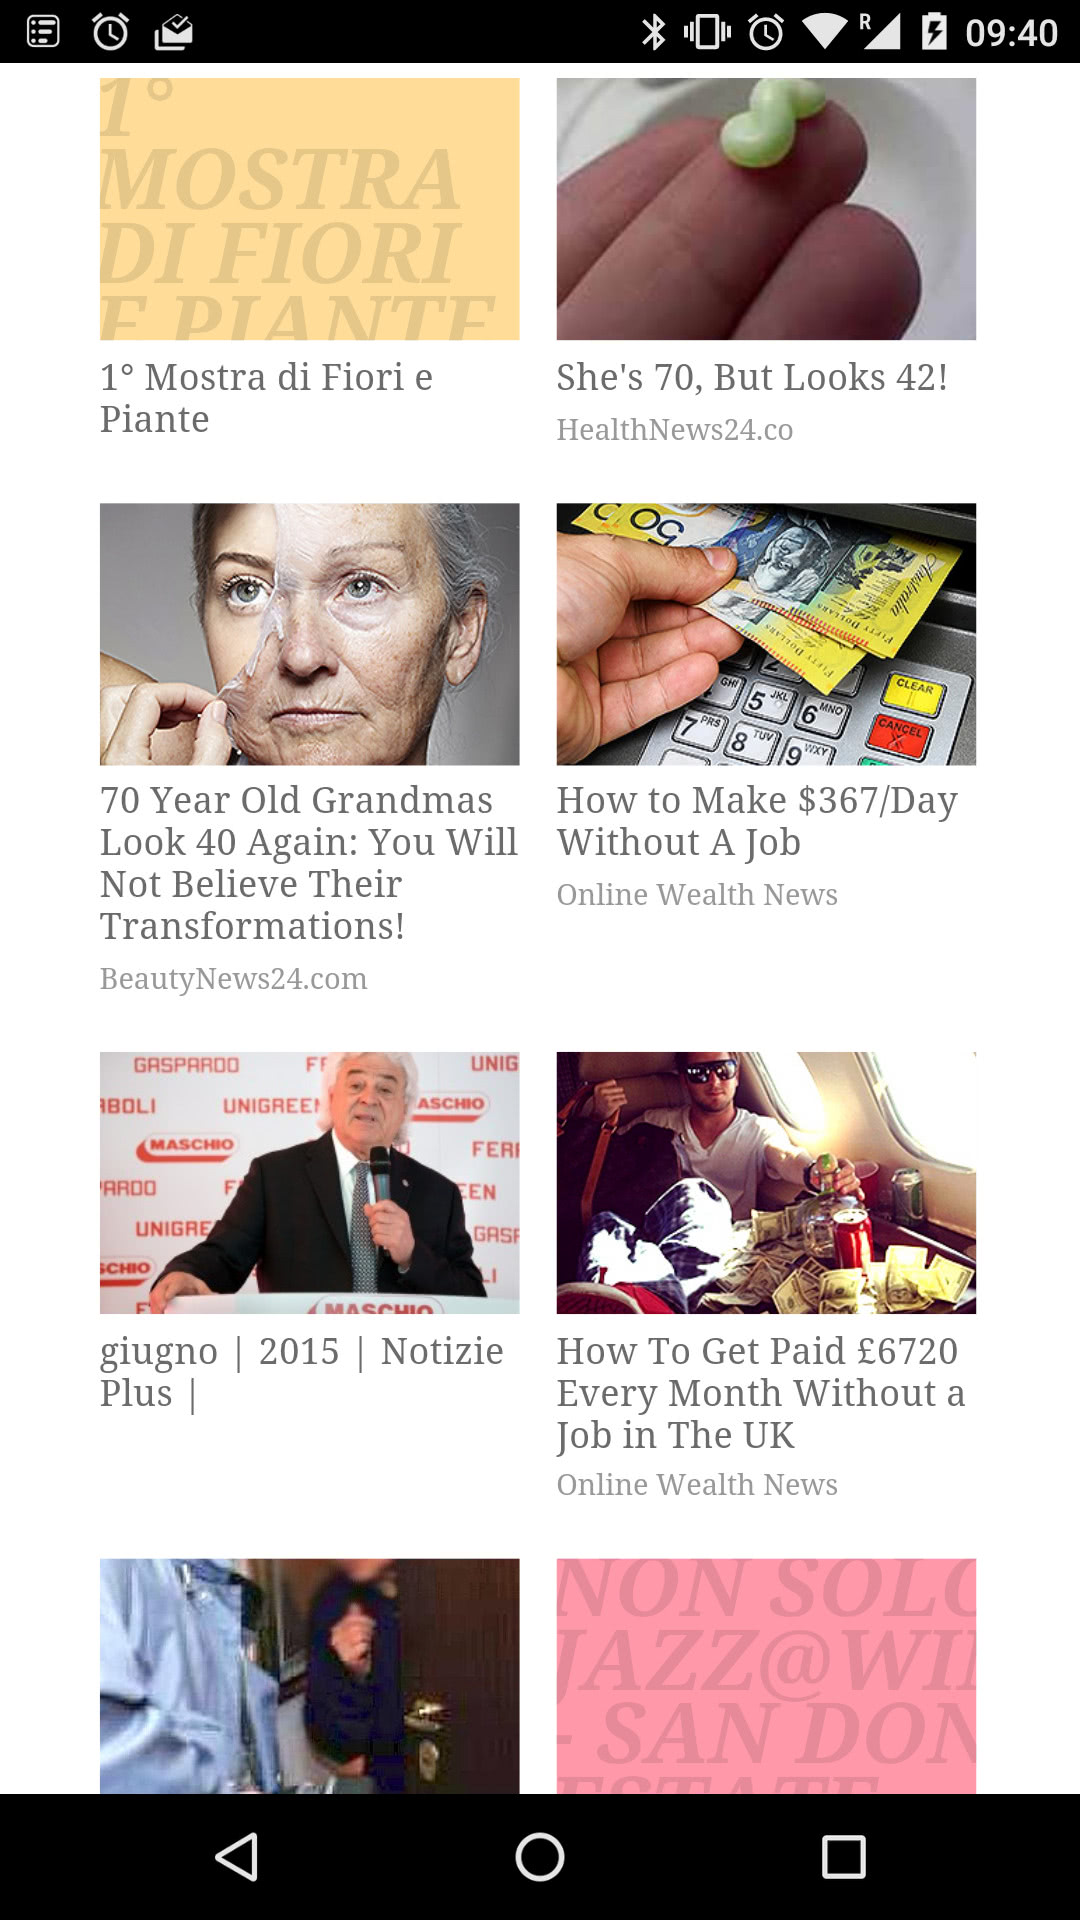 """An example of sponsored content on an Italian local newspaper. Half of the links are borderline scams like """"How to make $367/Day Without A Job""""."""